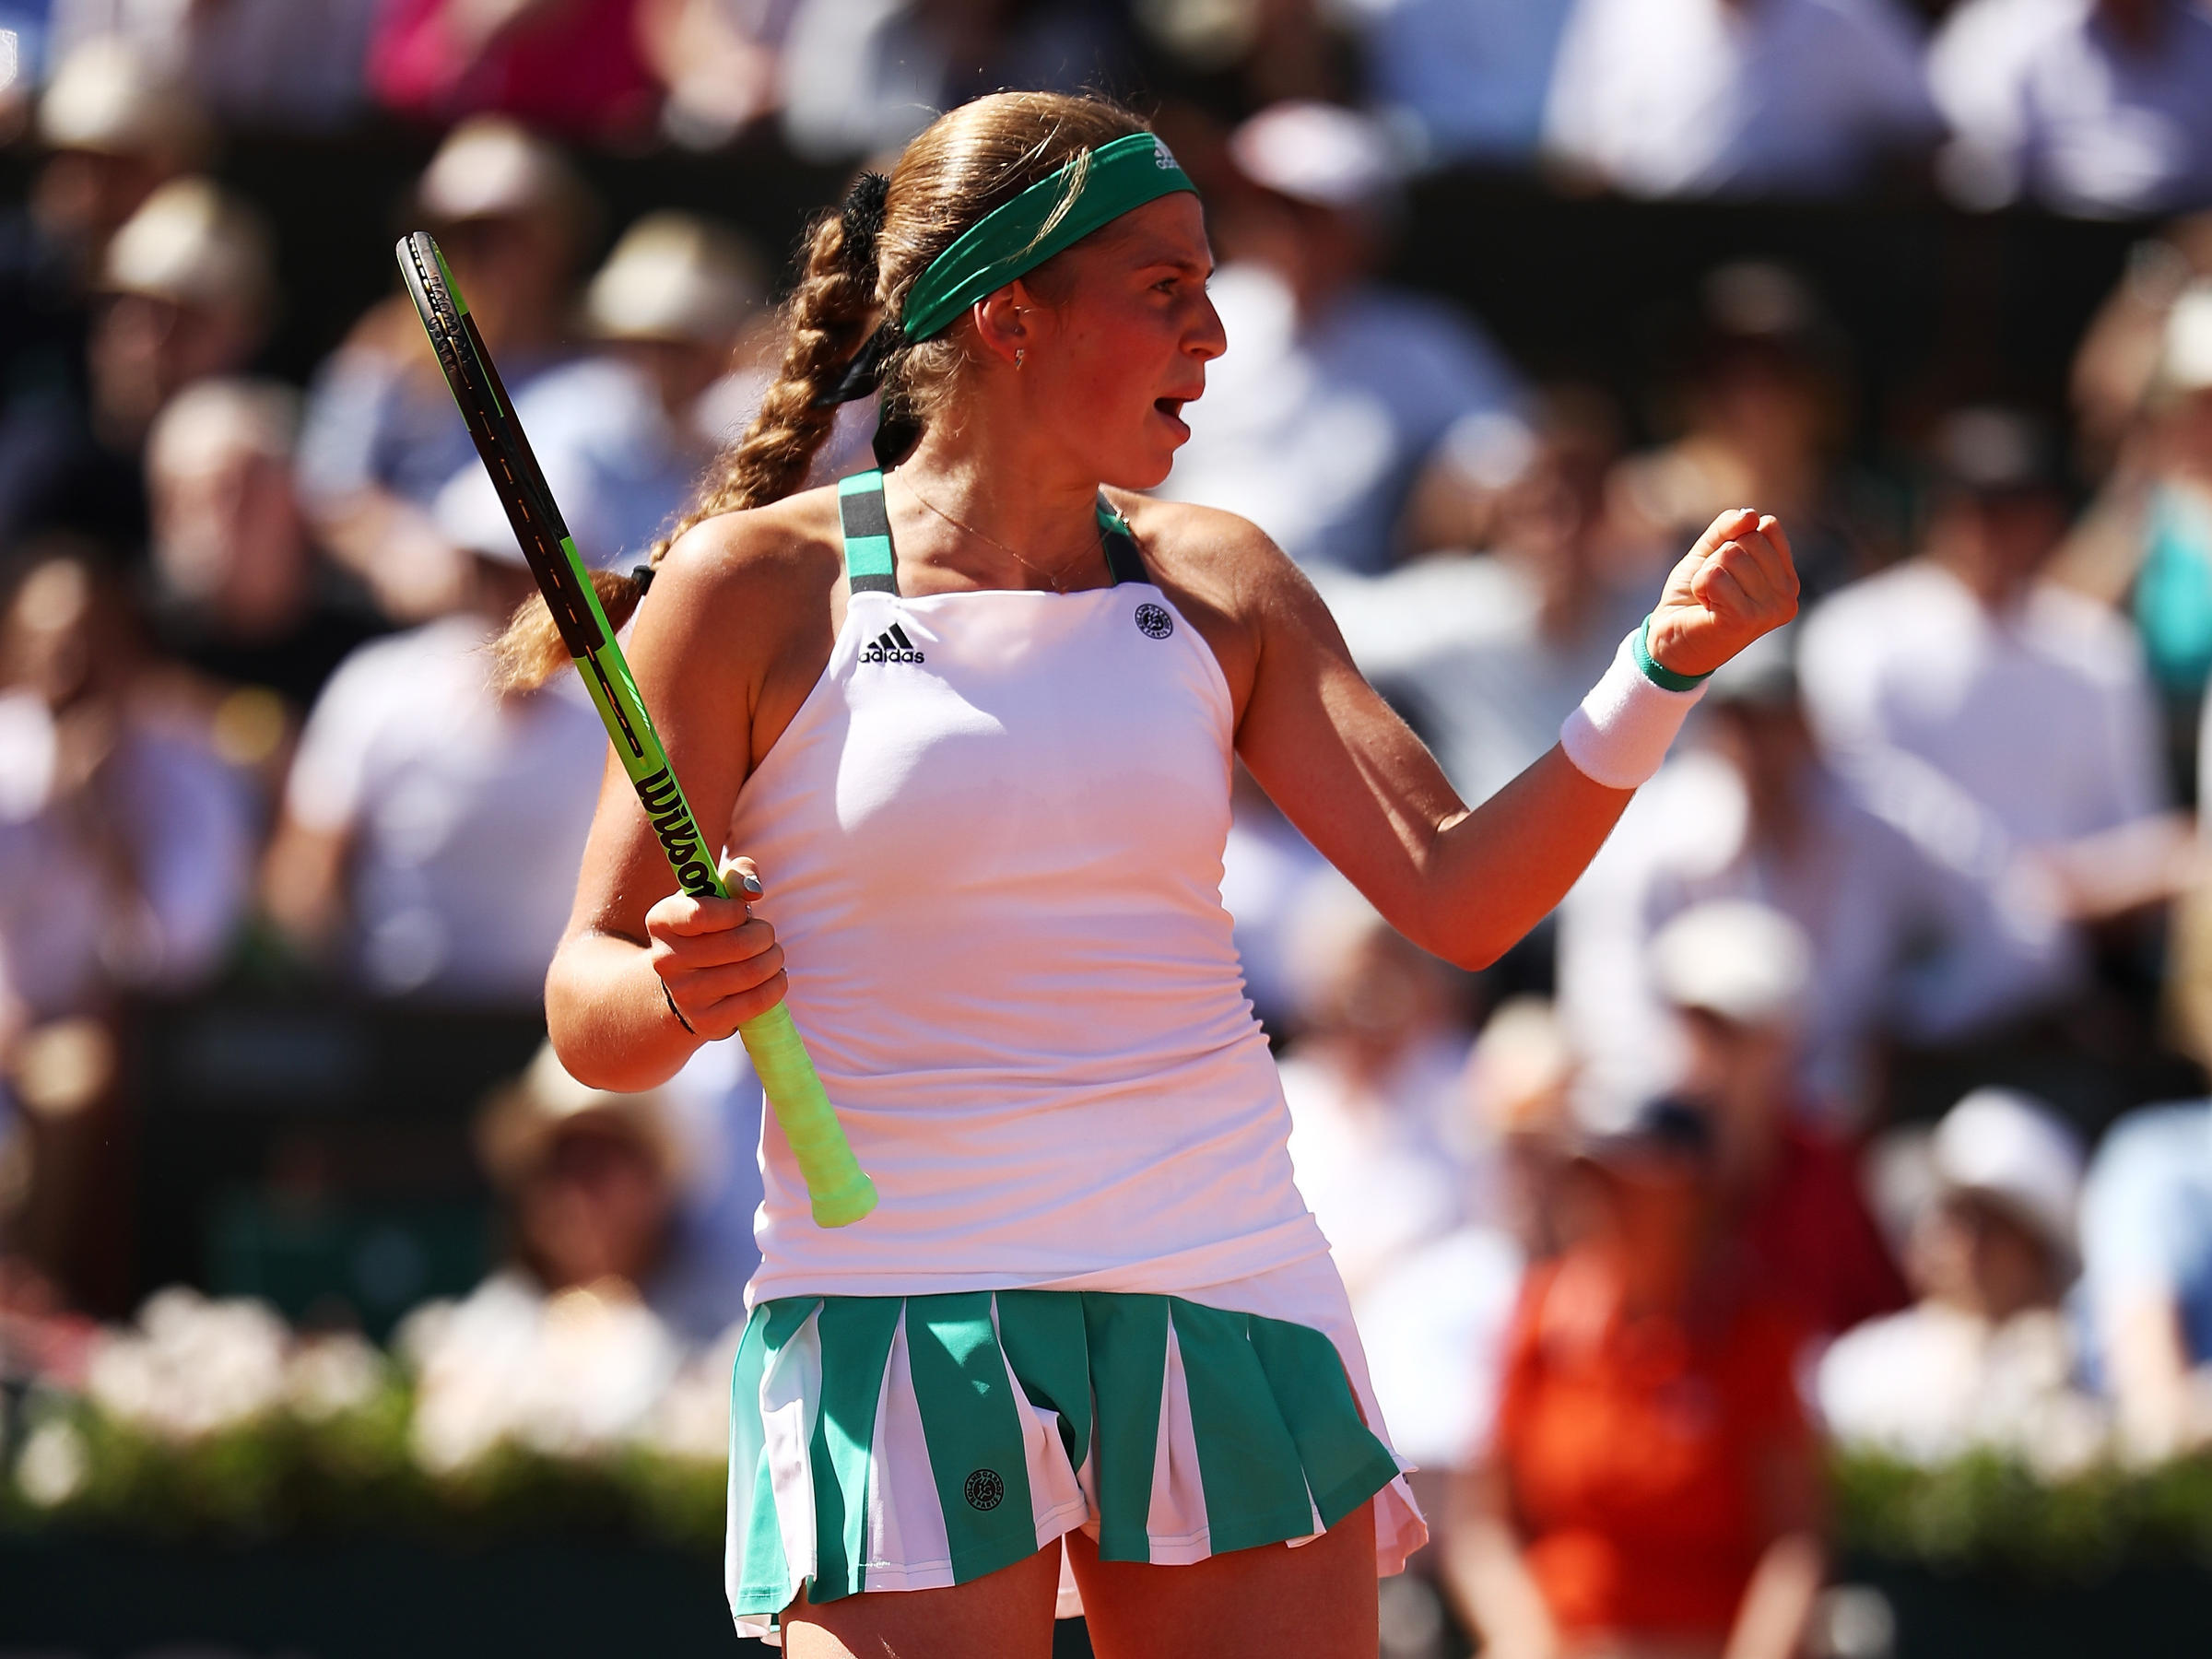 Unseeded Jelena Ostapenko crowned champion